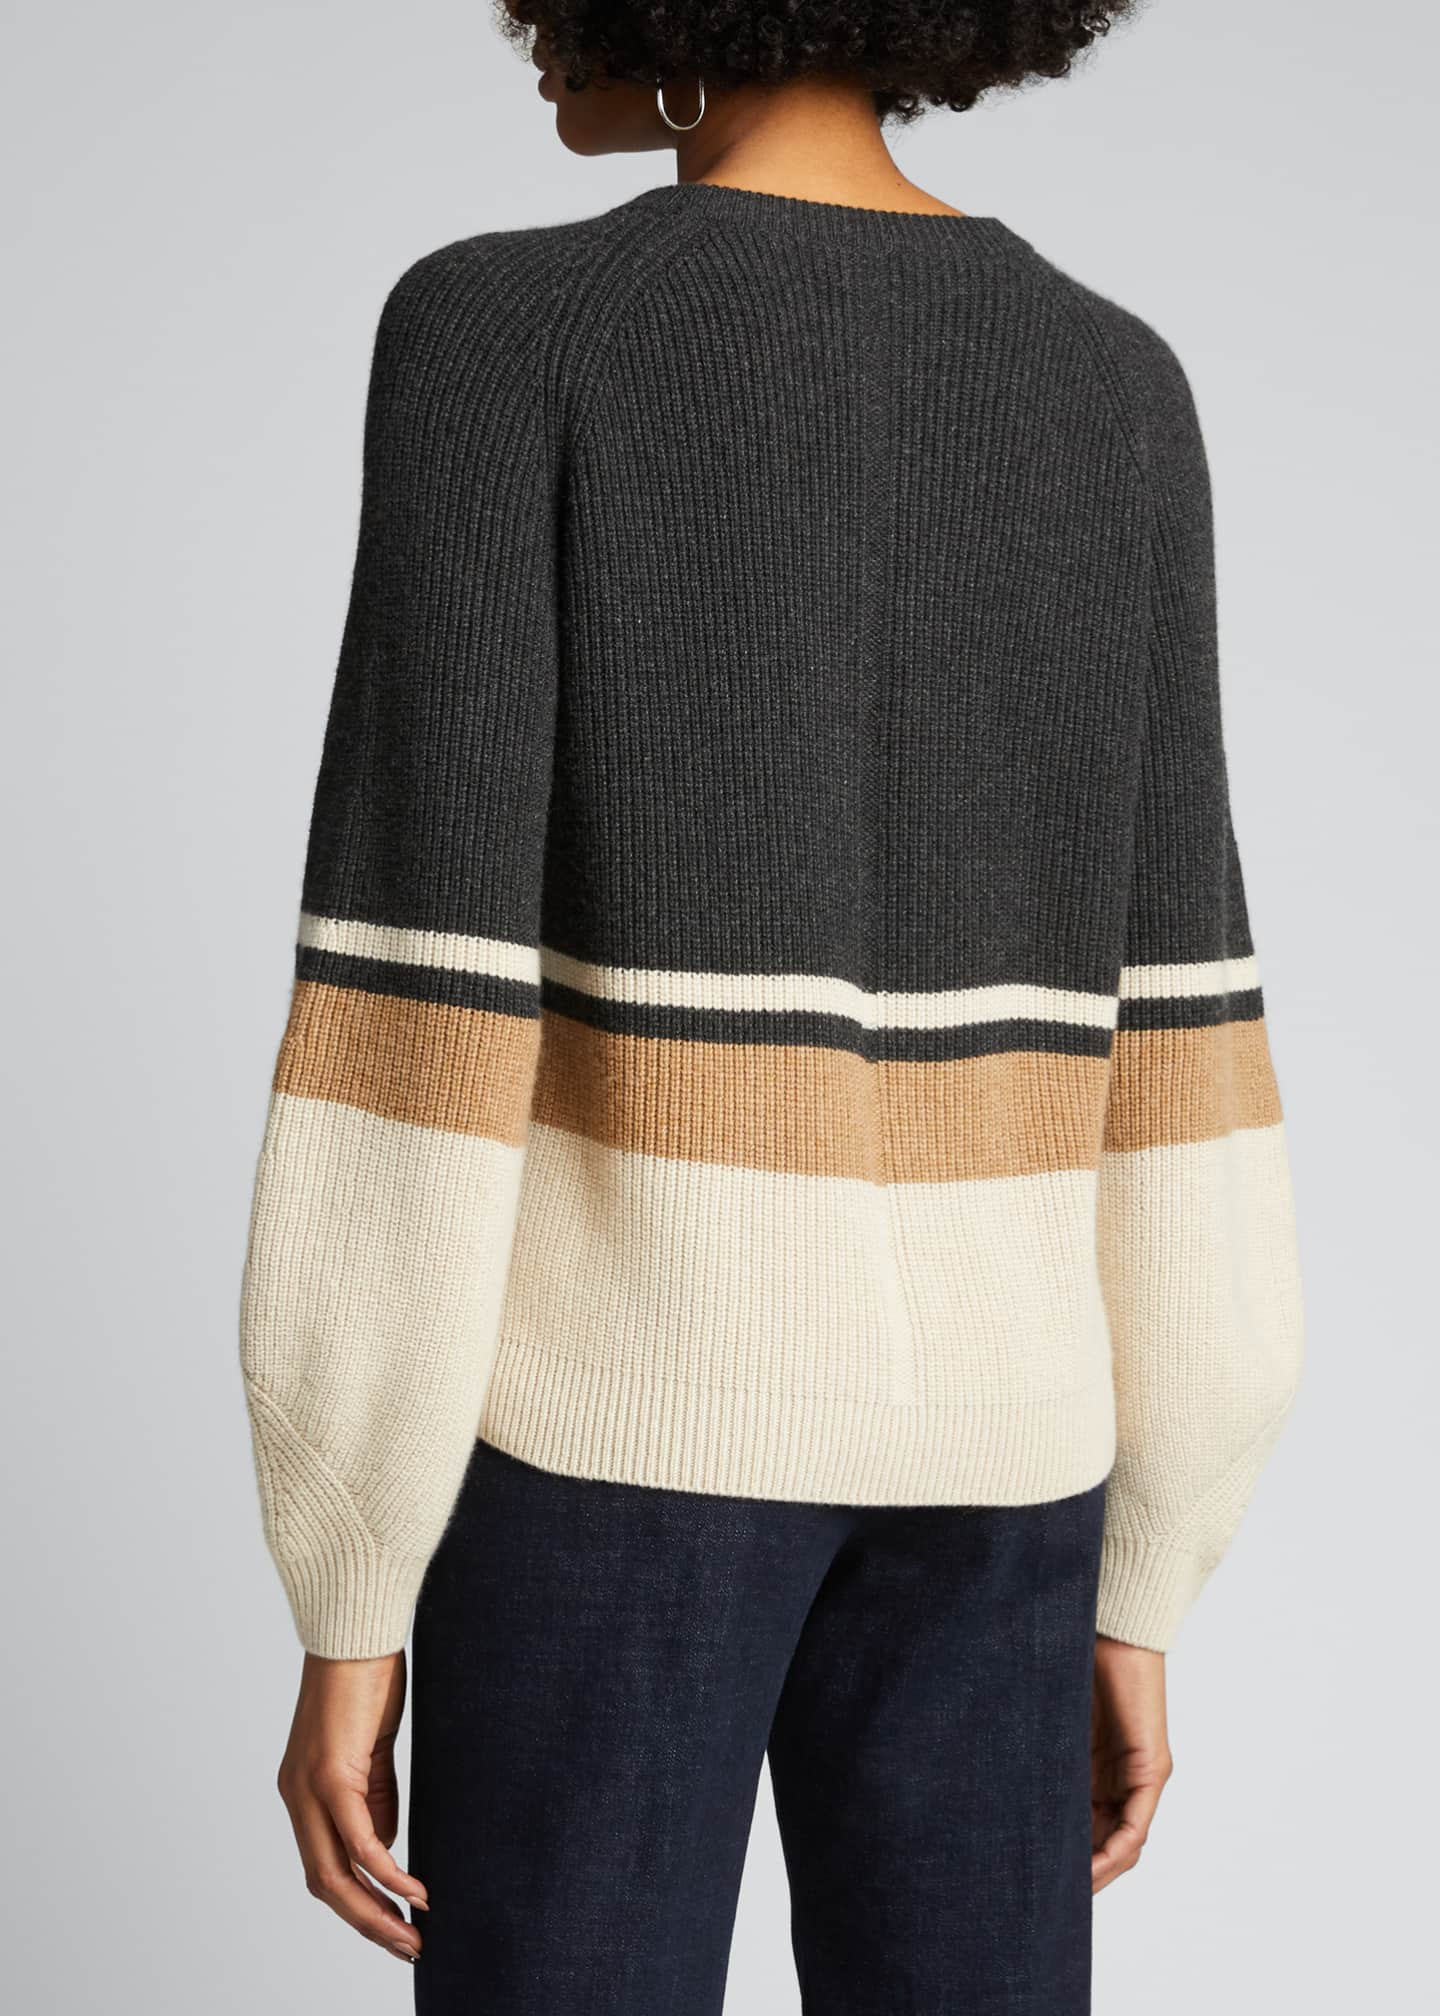 Image 2 of 4: Rigato Lexington Striped Cashmere Sweater